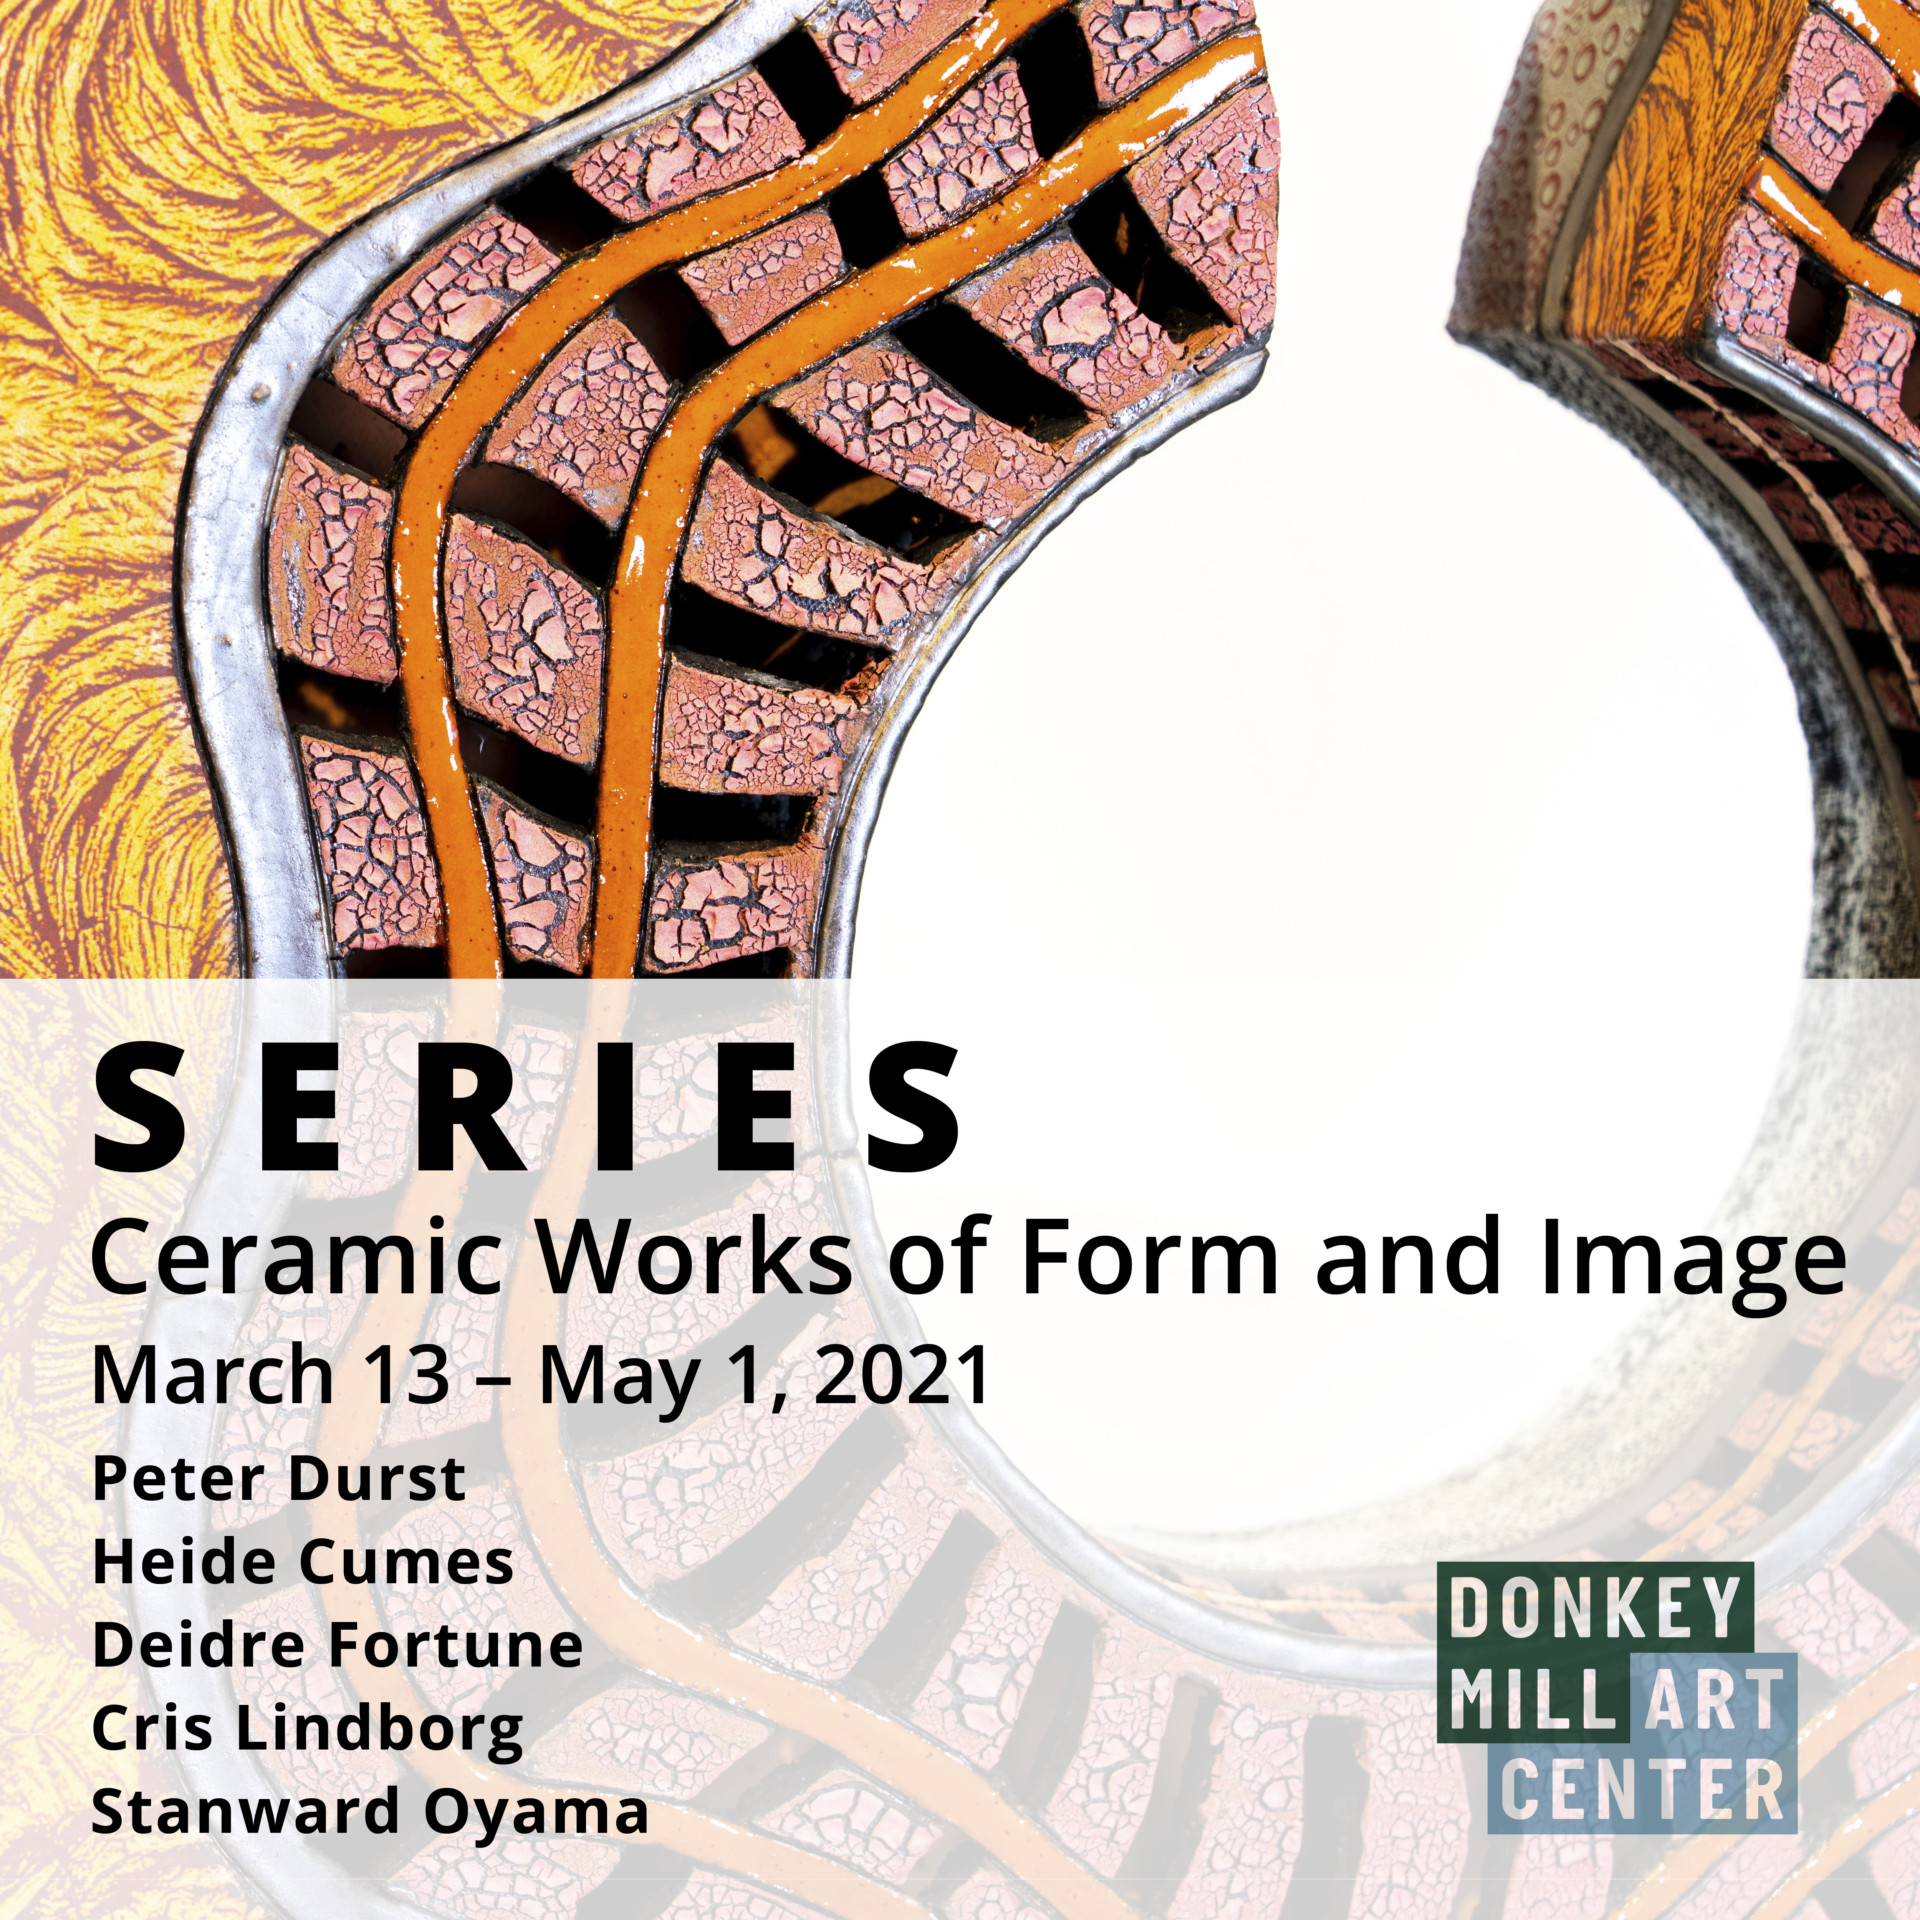 Series: Ceramic Works of Form and Image